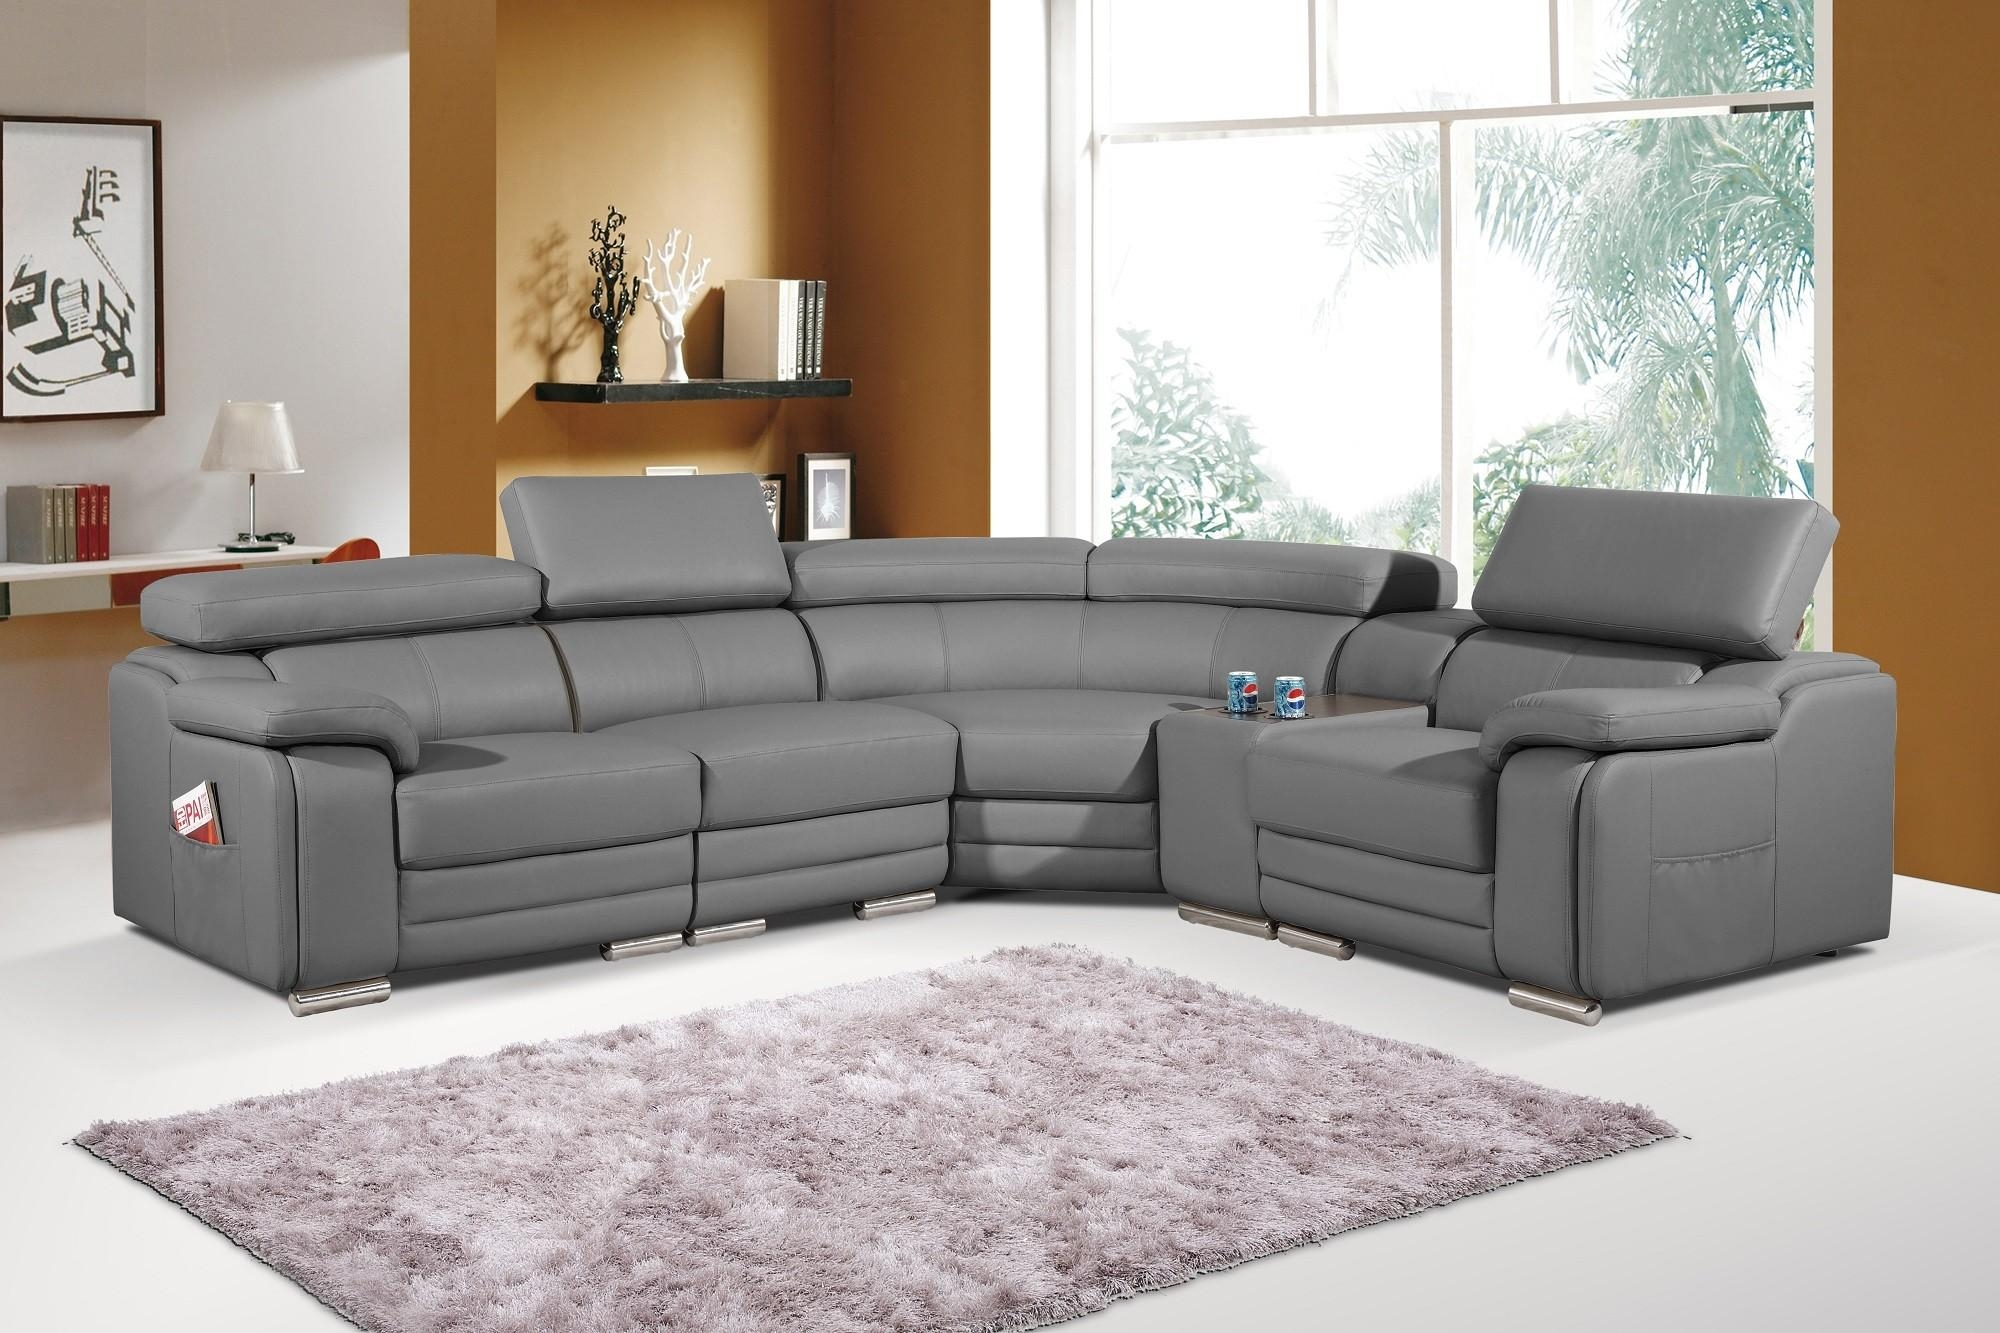 2017 Latest Charcoal Grey Leather Sofas Sofa Ideas